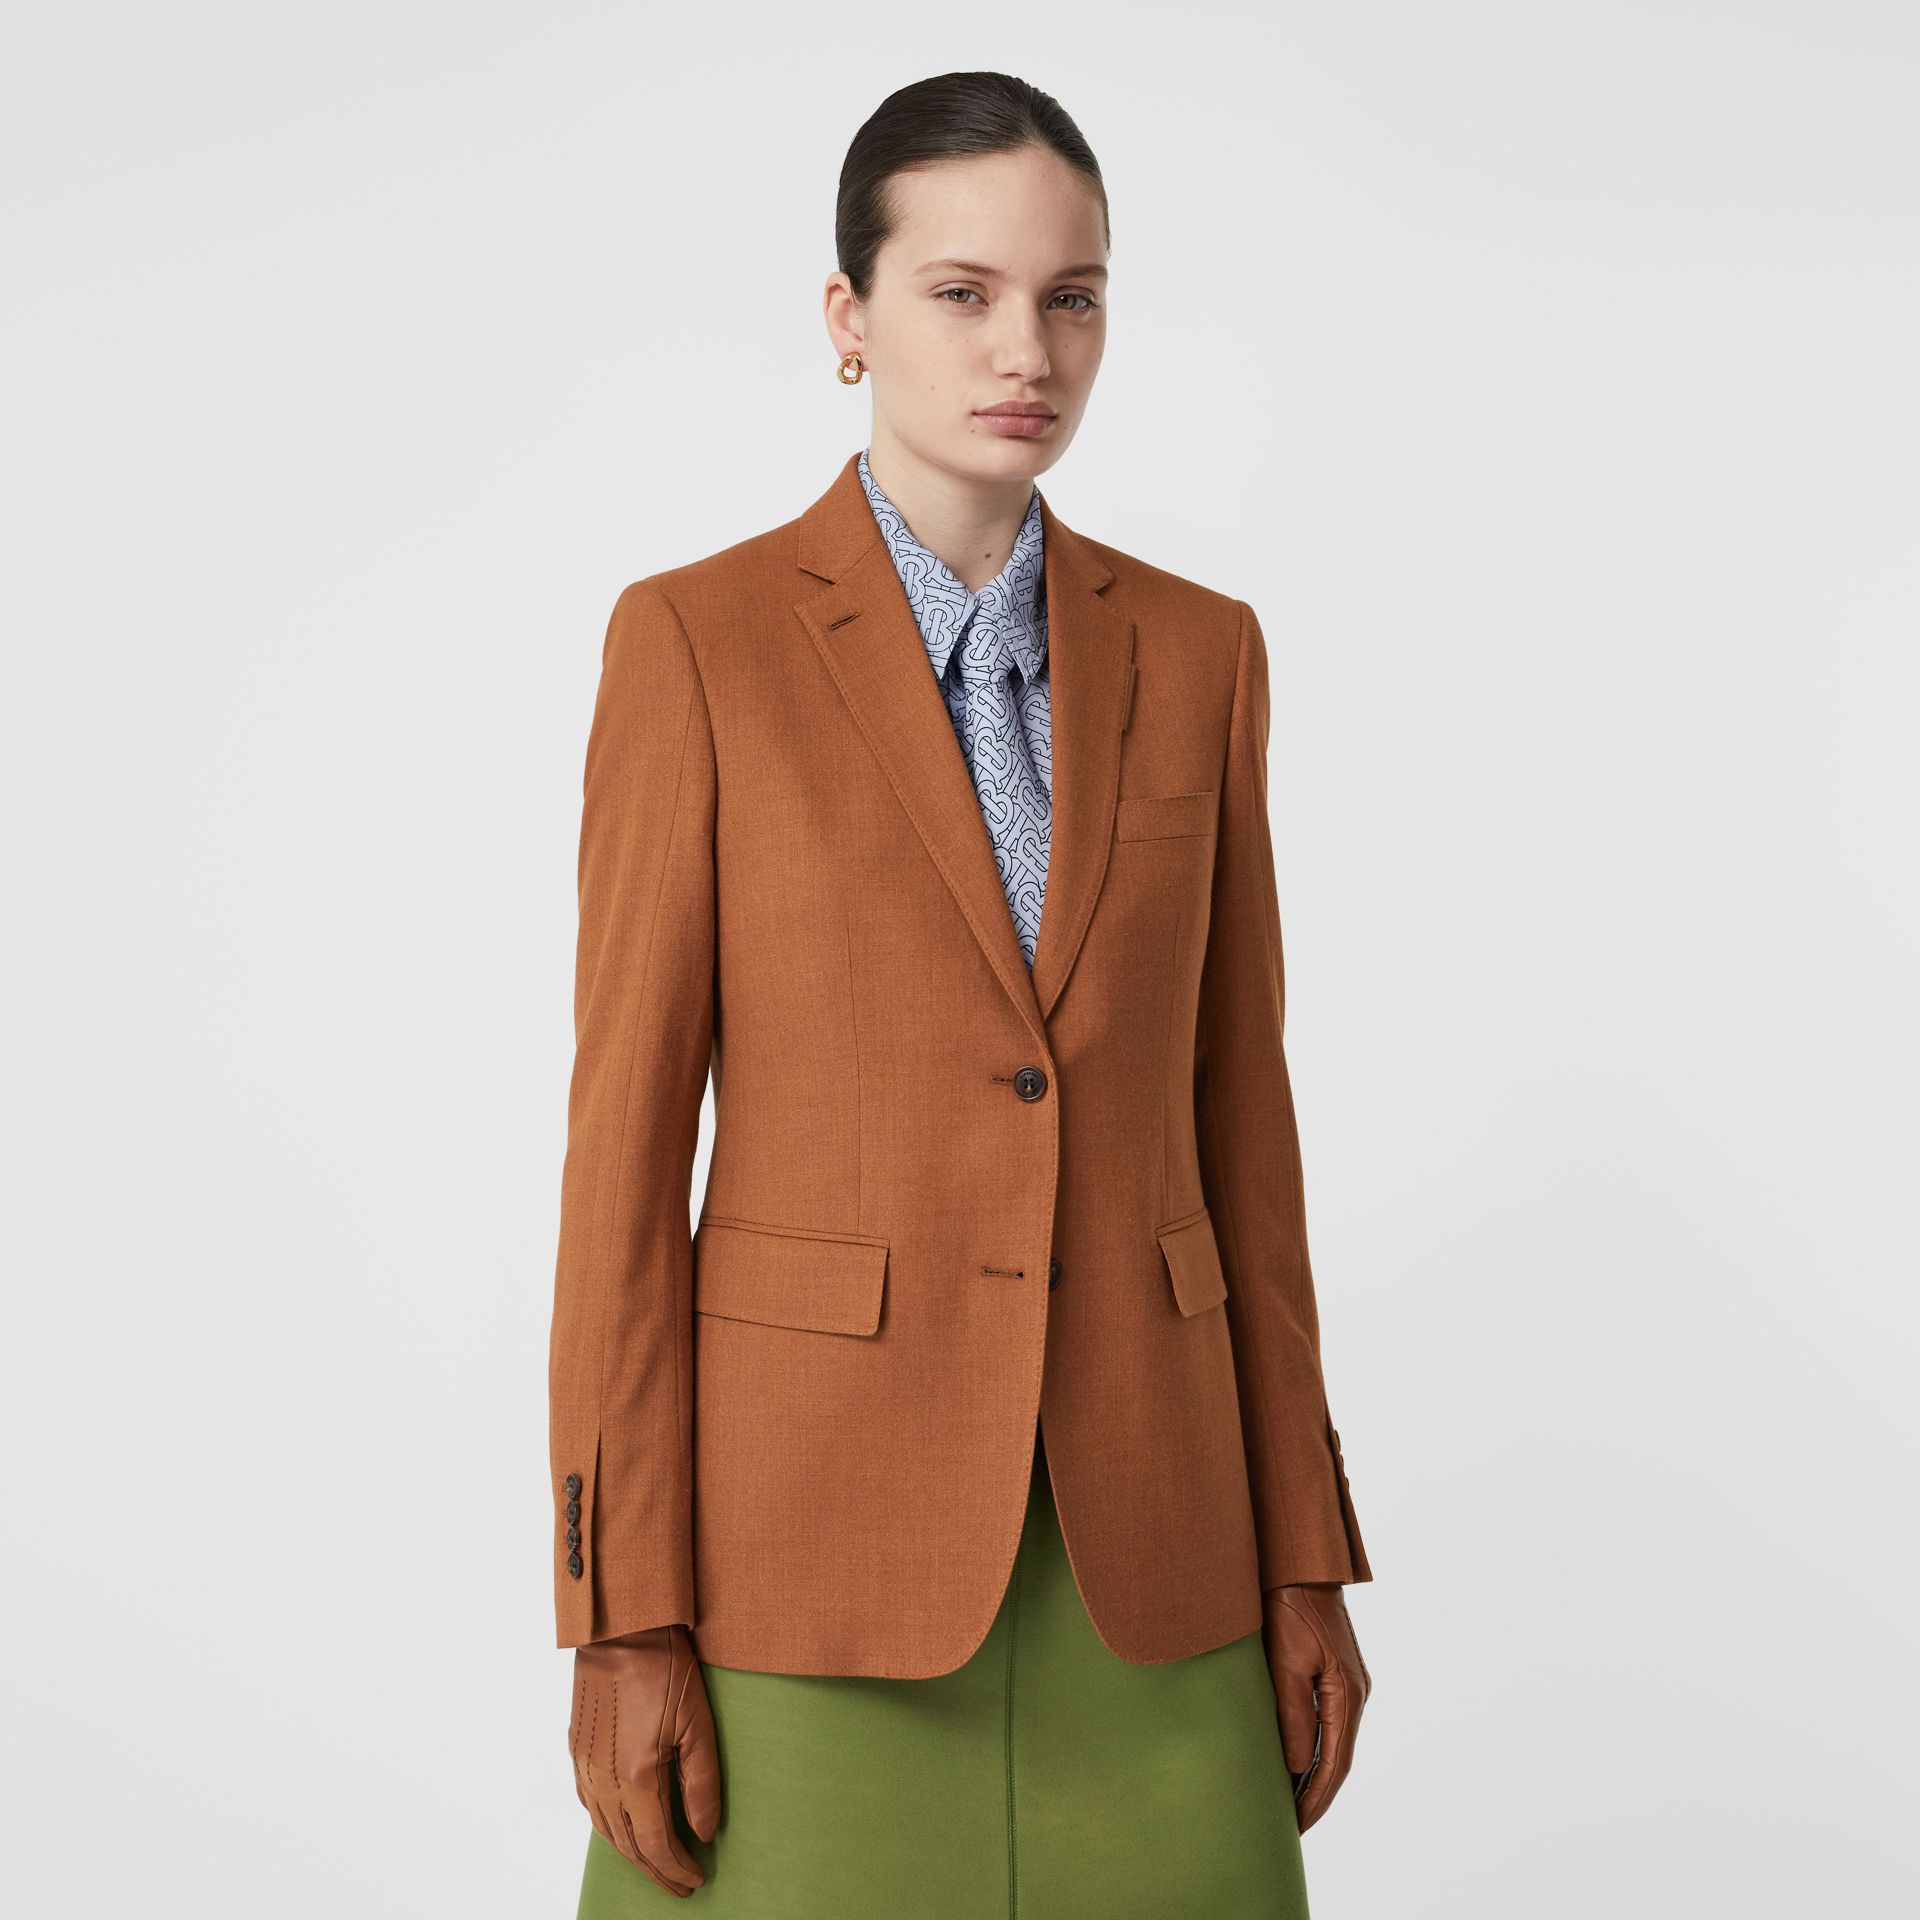 Wool, Silk and Cotton Blazer in Rust - Women | Burberry - gallery image 4